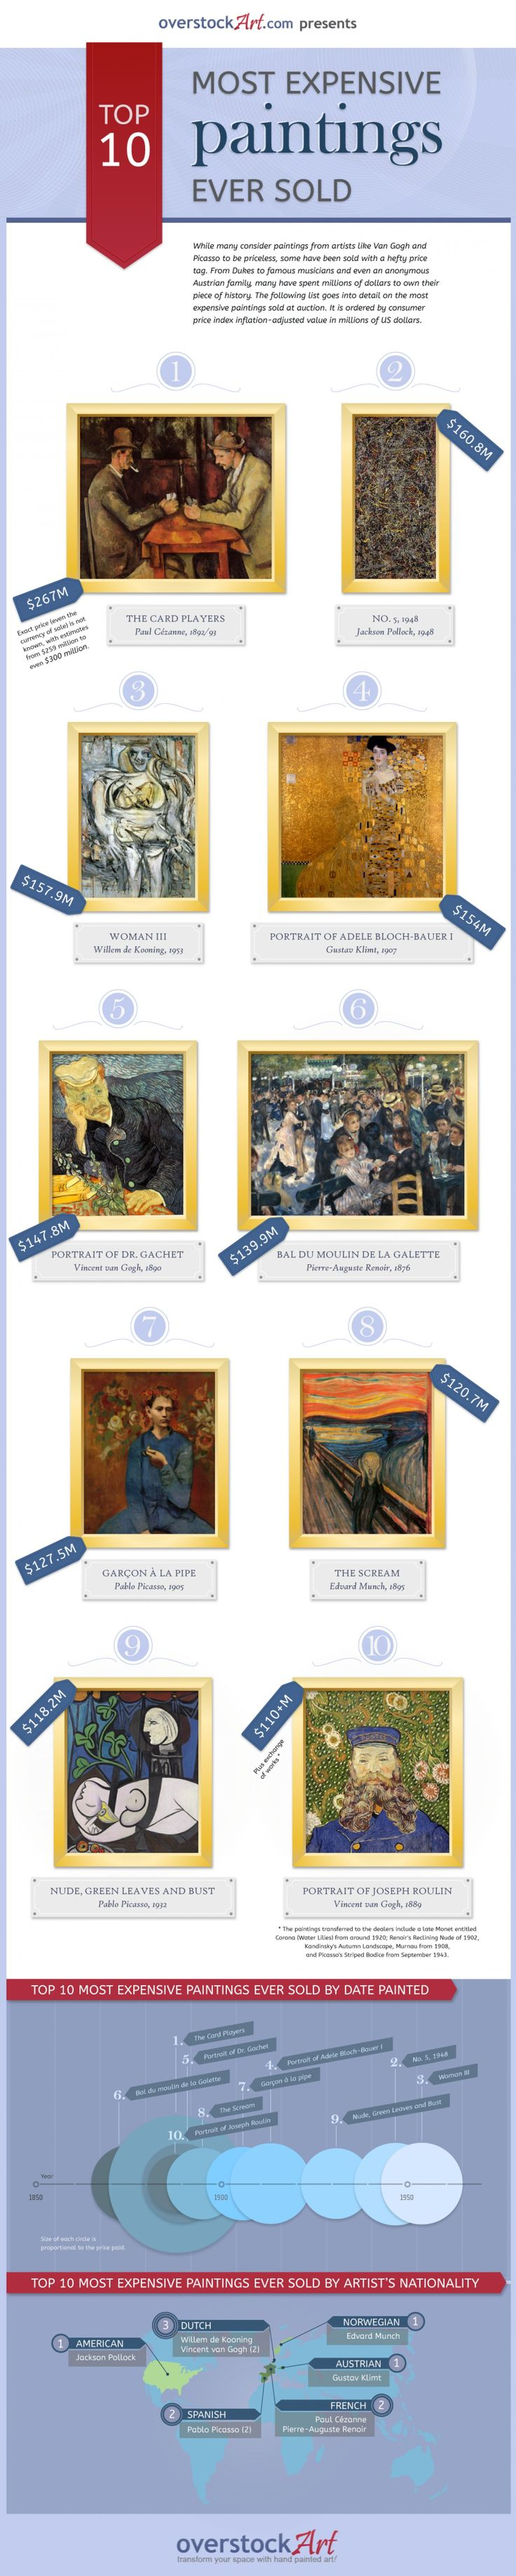 Top 10 Most Expensive Paintings Ever Sold Infographic